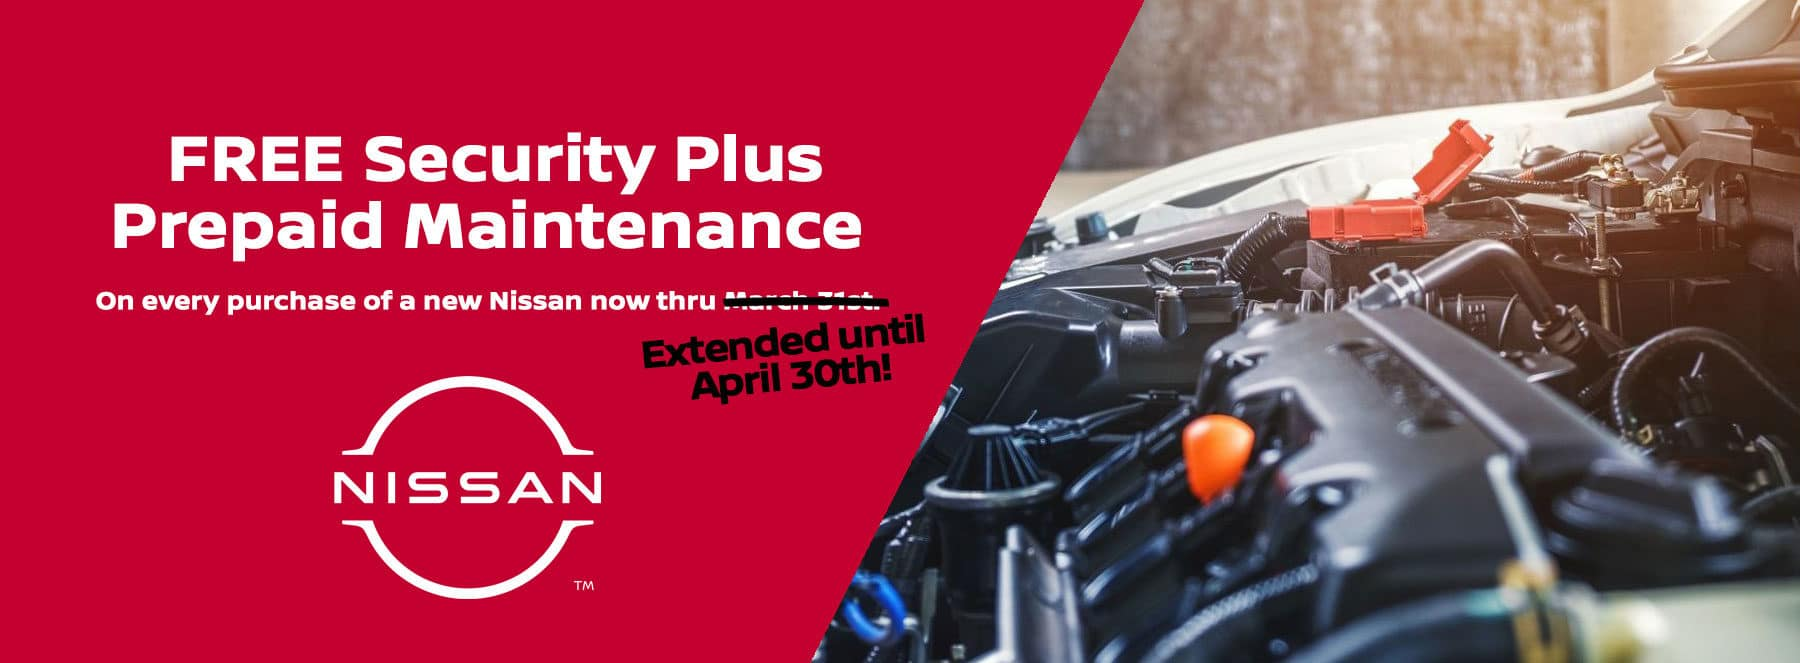 NISSAN-SECURITY+MAINTENANCE-extended